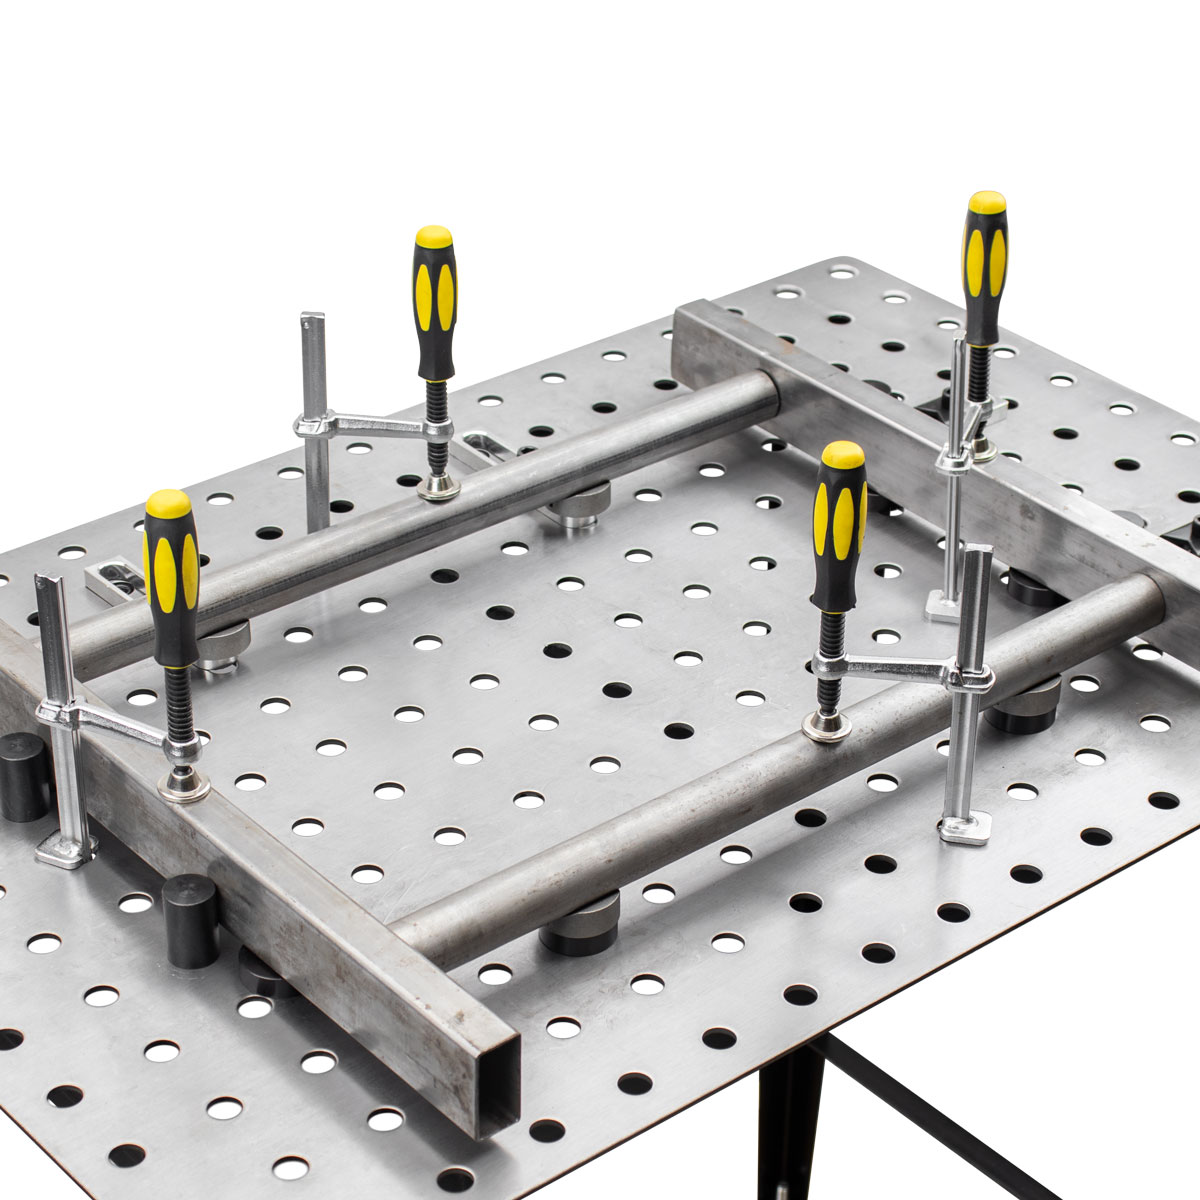 Square and Round Tubes Frame on fixturepoint table